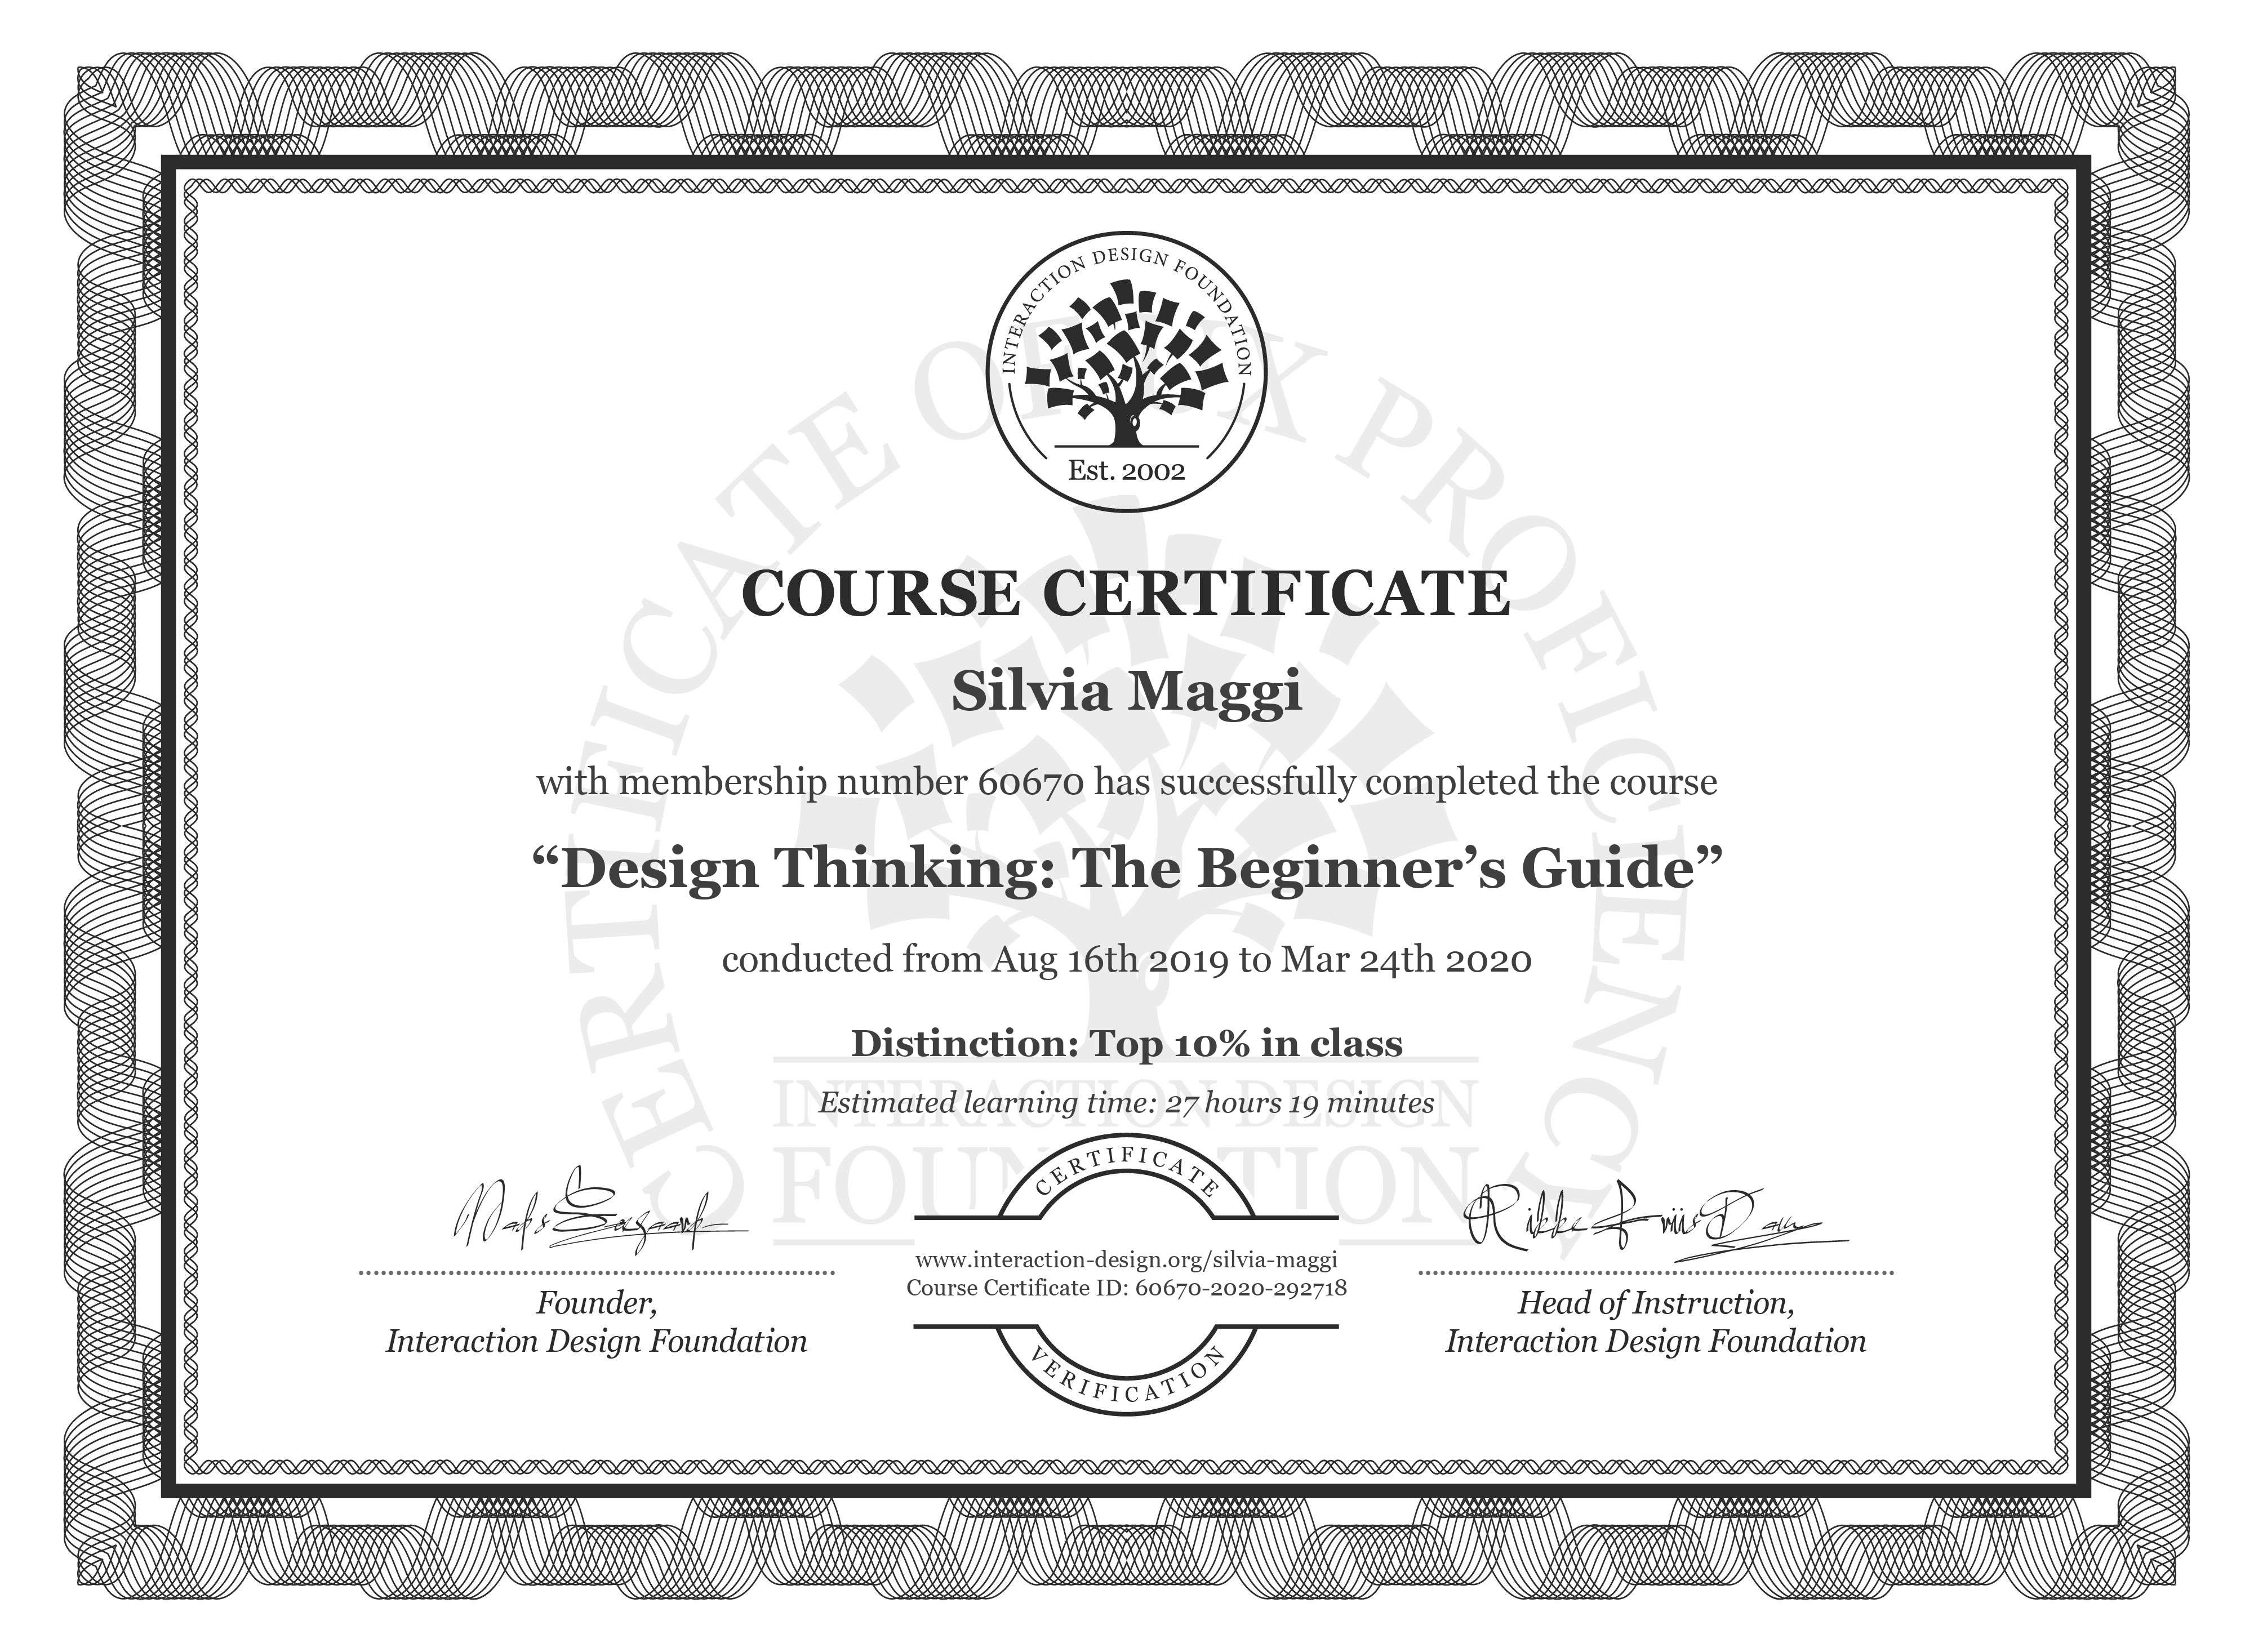 Silvia Maggi's Course Certificate: Design Thinking: The Beginner's Guide